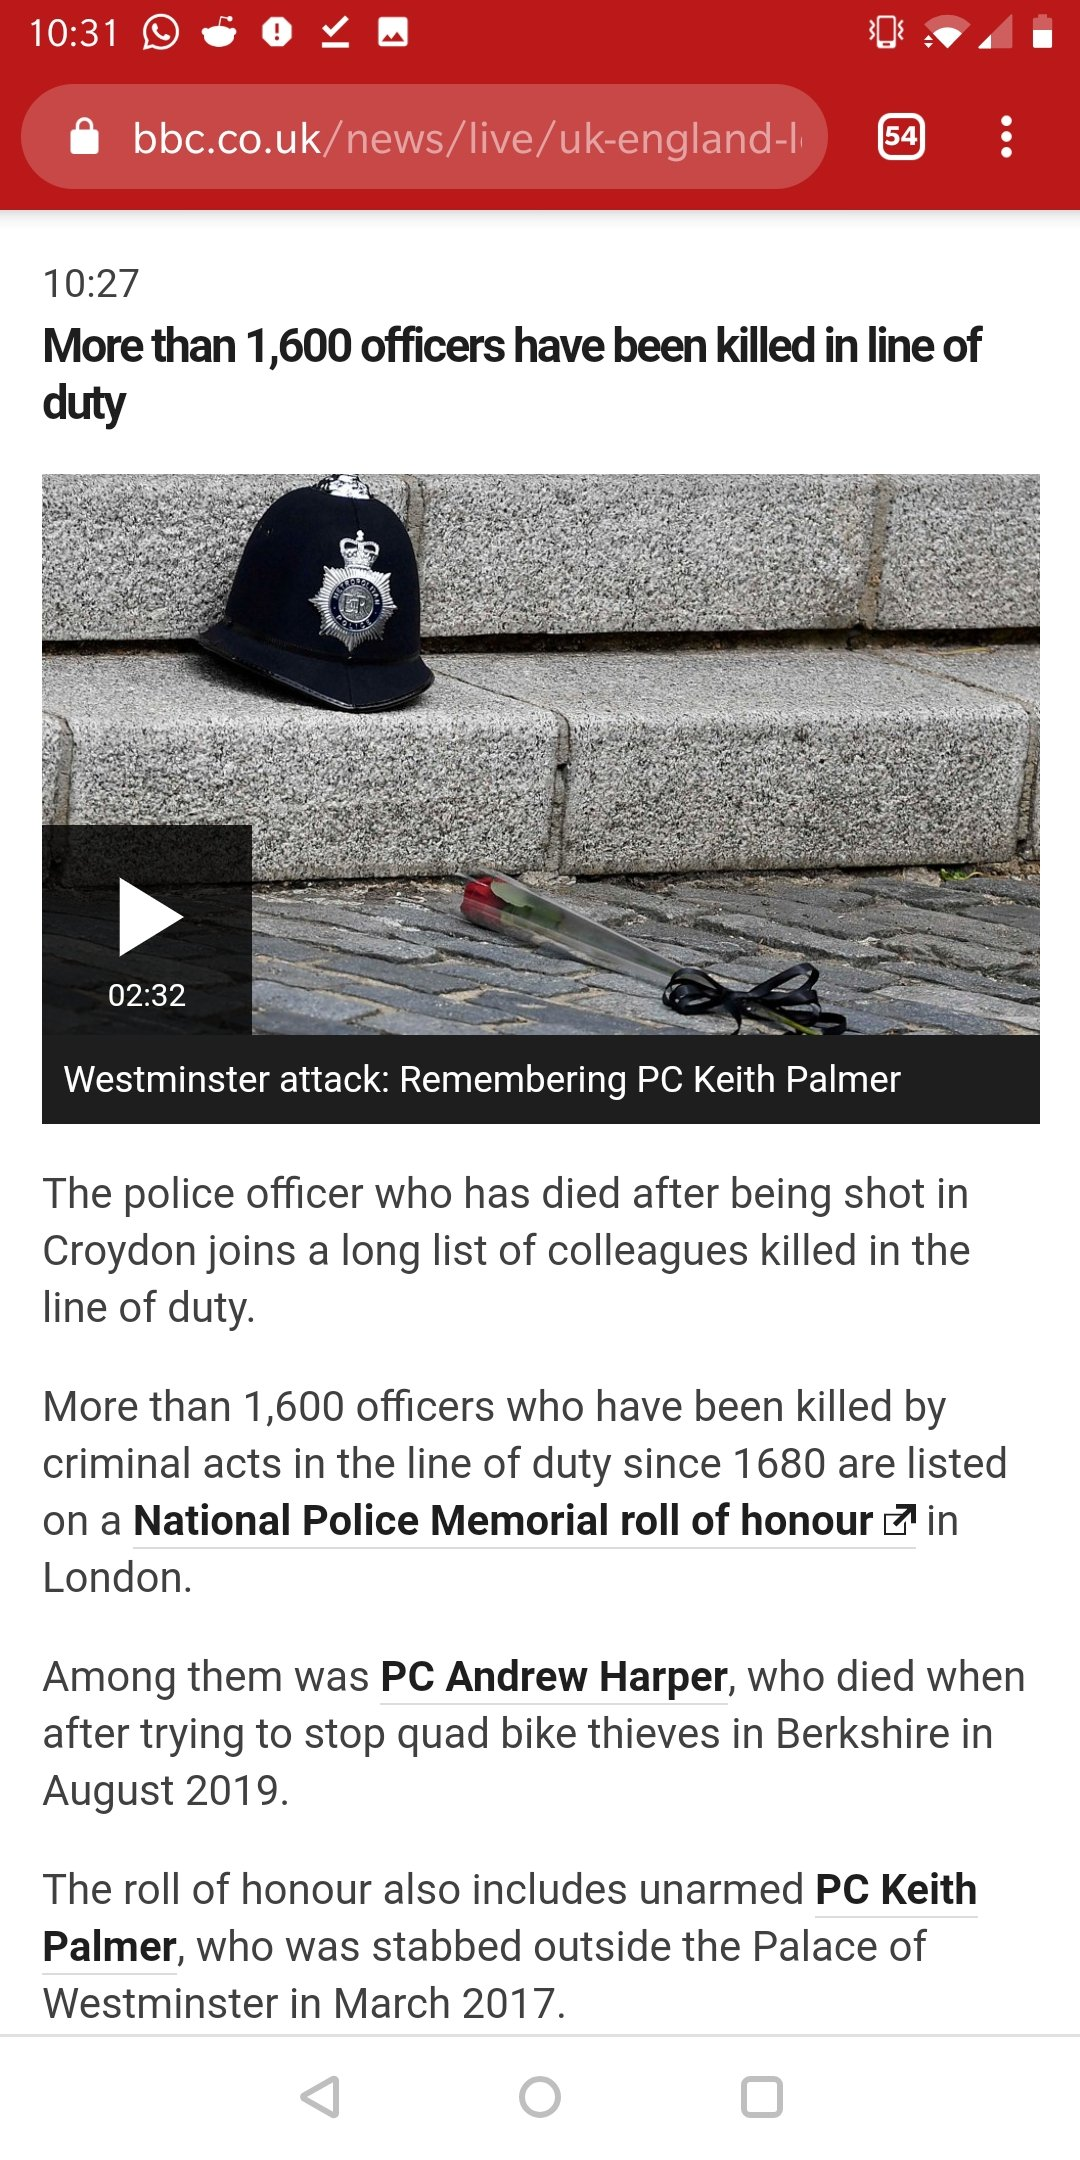 British Copaganda - Counting Police Deaths Since 1680 to Get Some Number